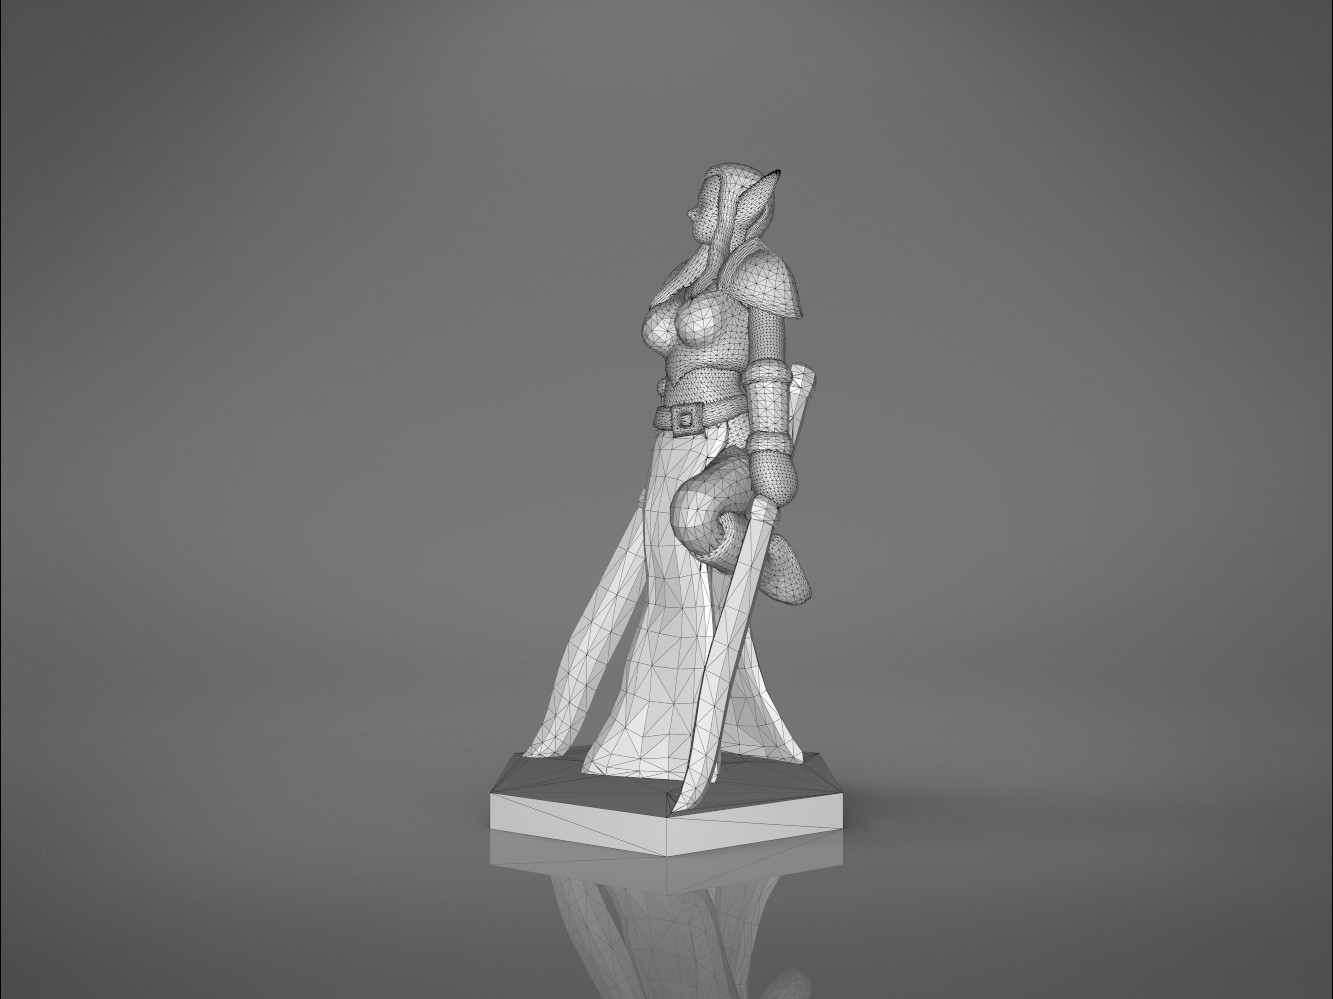 Warrior_2-right_perspective.331.jpg Download STL file ELF WARRIOR FEMALE CHARACTER GAME FIGURE 3D print model • 3D printing object, 3D-mon